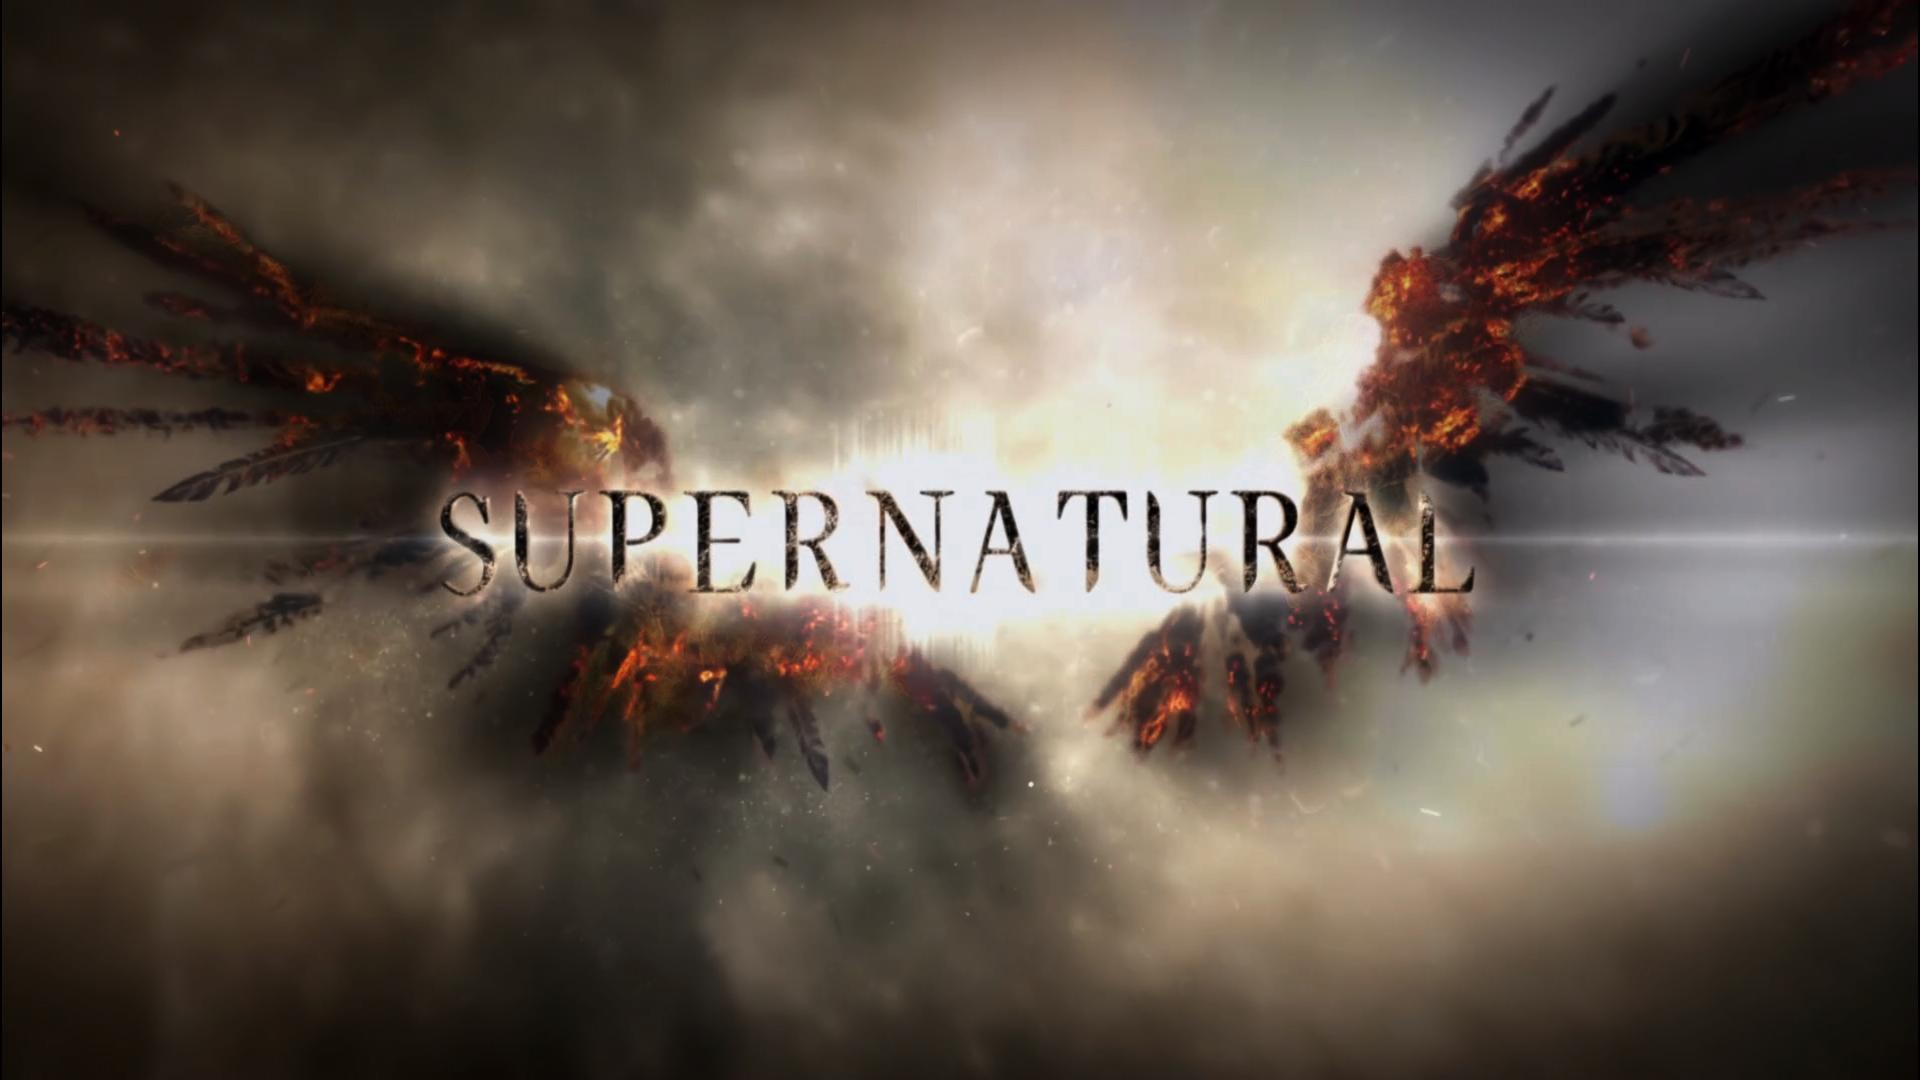 supernatural wallpapers font